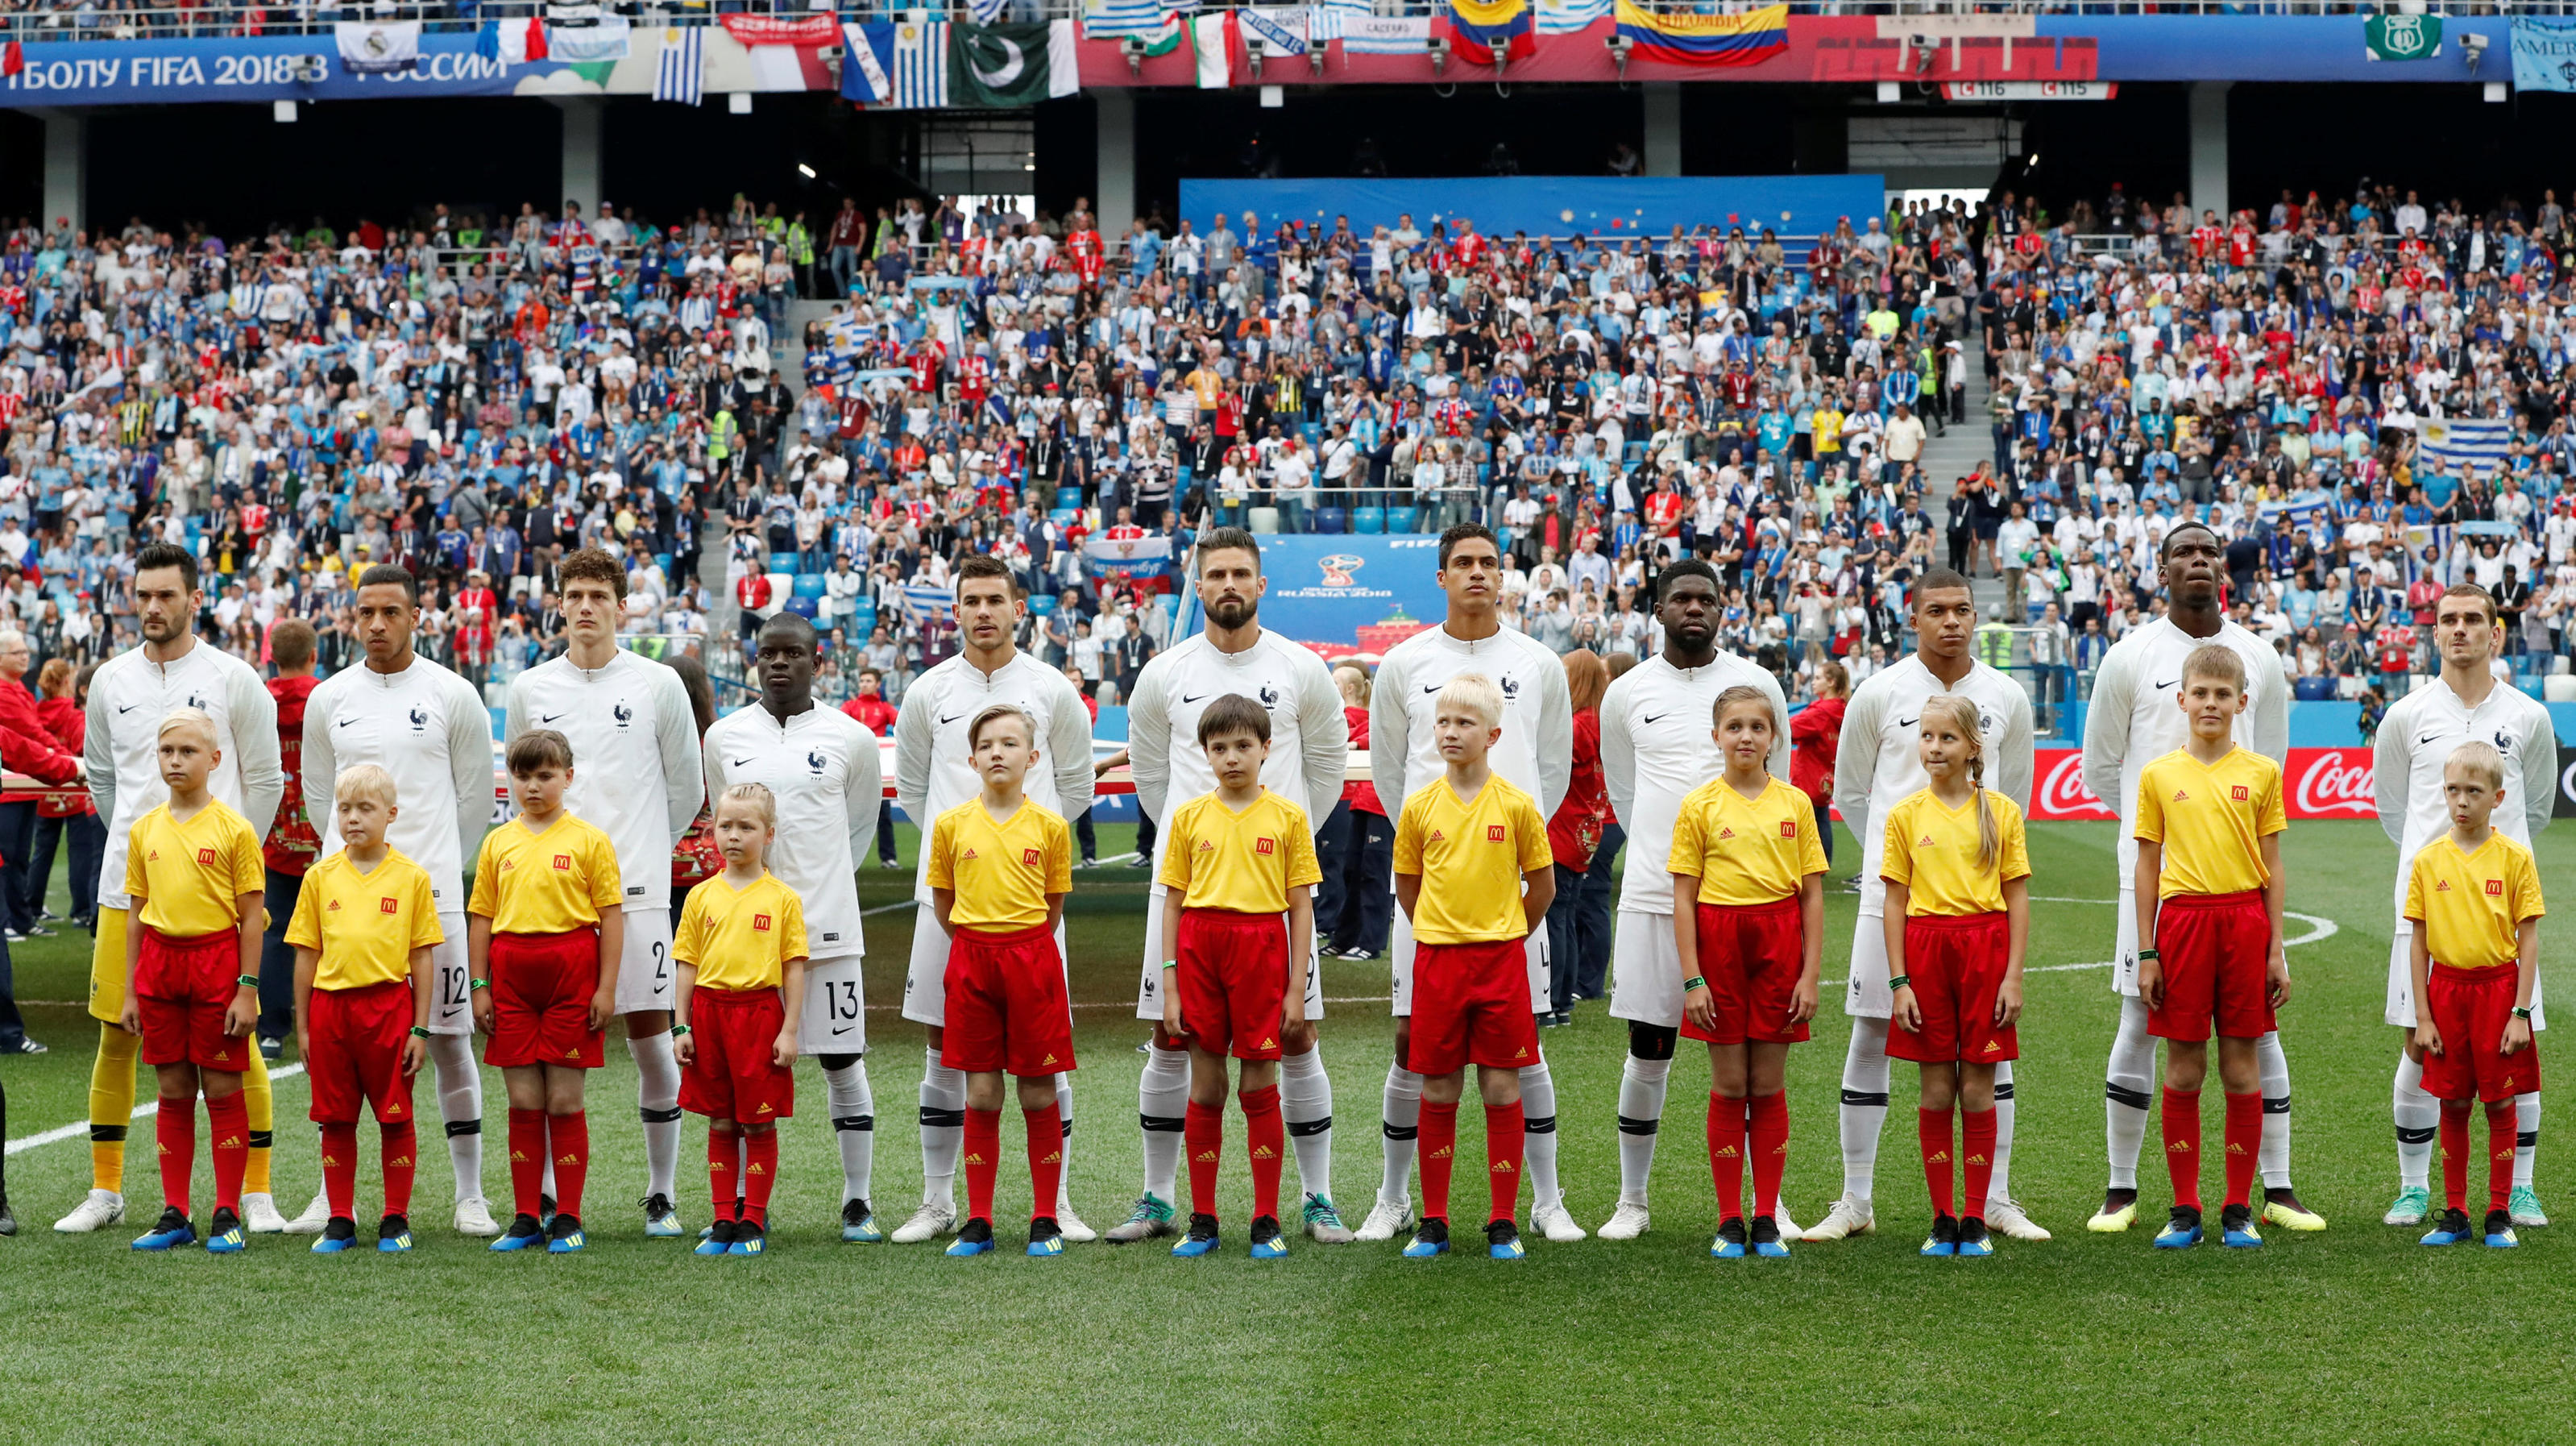 Soccer Football - World Cup - Quarter Final - Uruguay vs France - Nizhny Novgorod Stadium, Nizhny Novgorod, Russia - July 6, 2018  France players line up during the national anthem before the match  REUTERS/Grigory Dukor